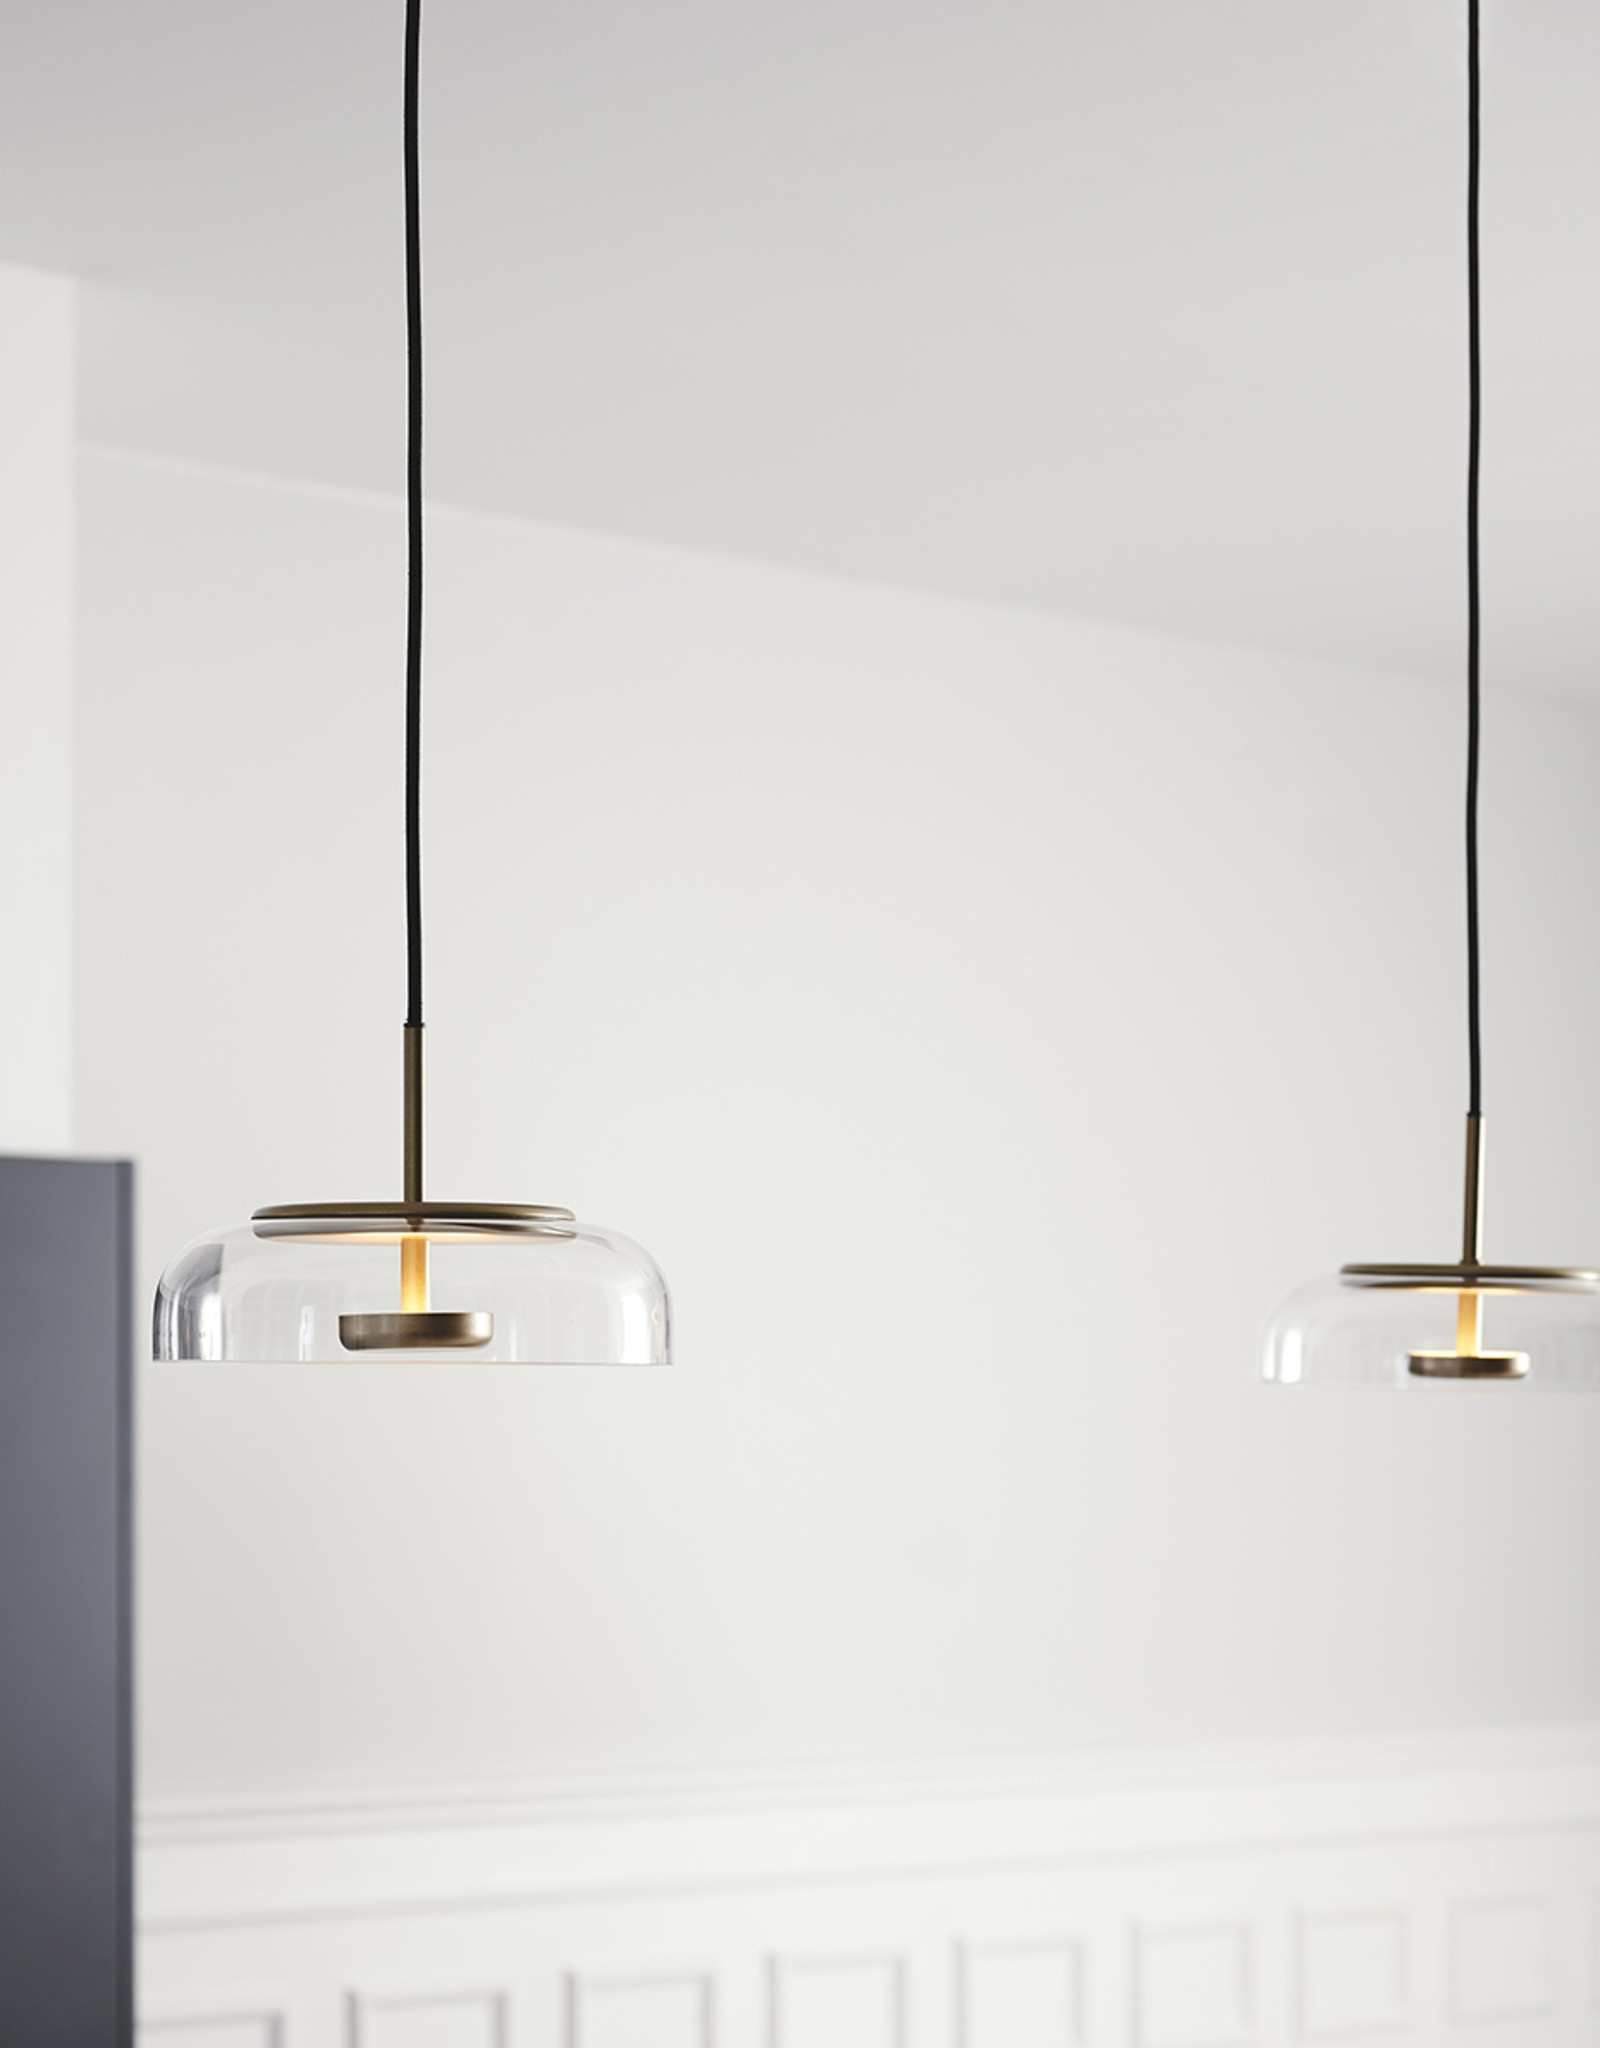 Nuura Blossi 1 pendant by Sofie Refer | Nordic gold/optic clear